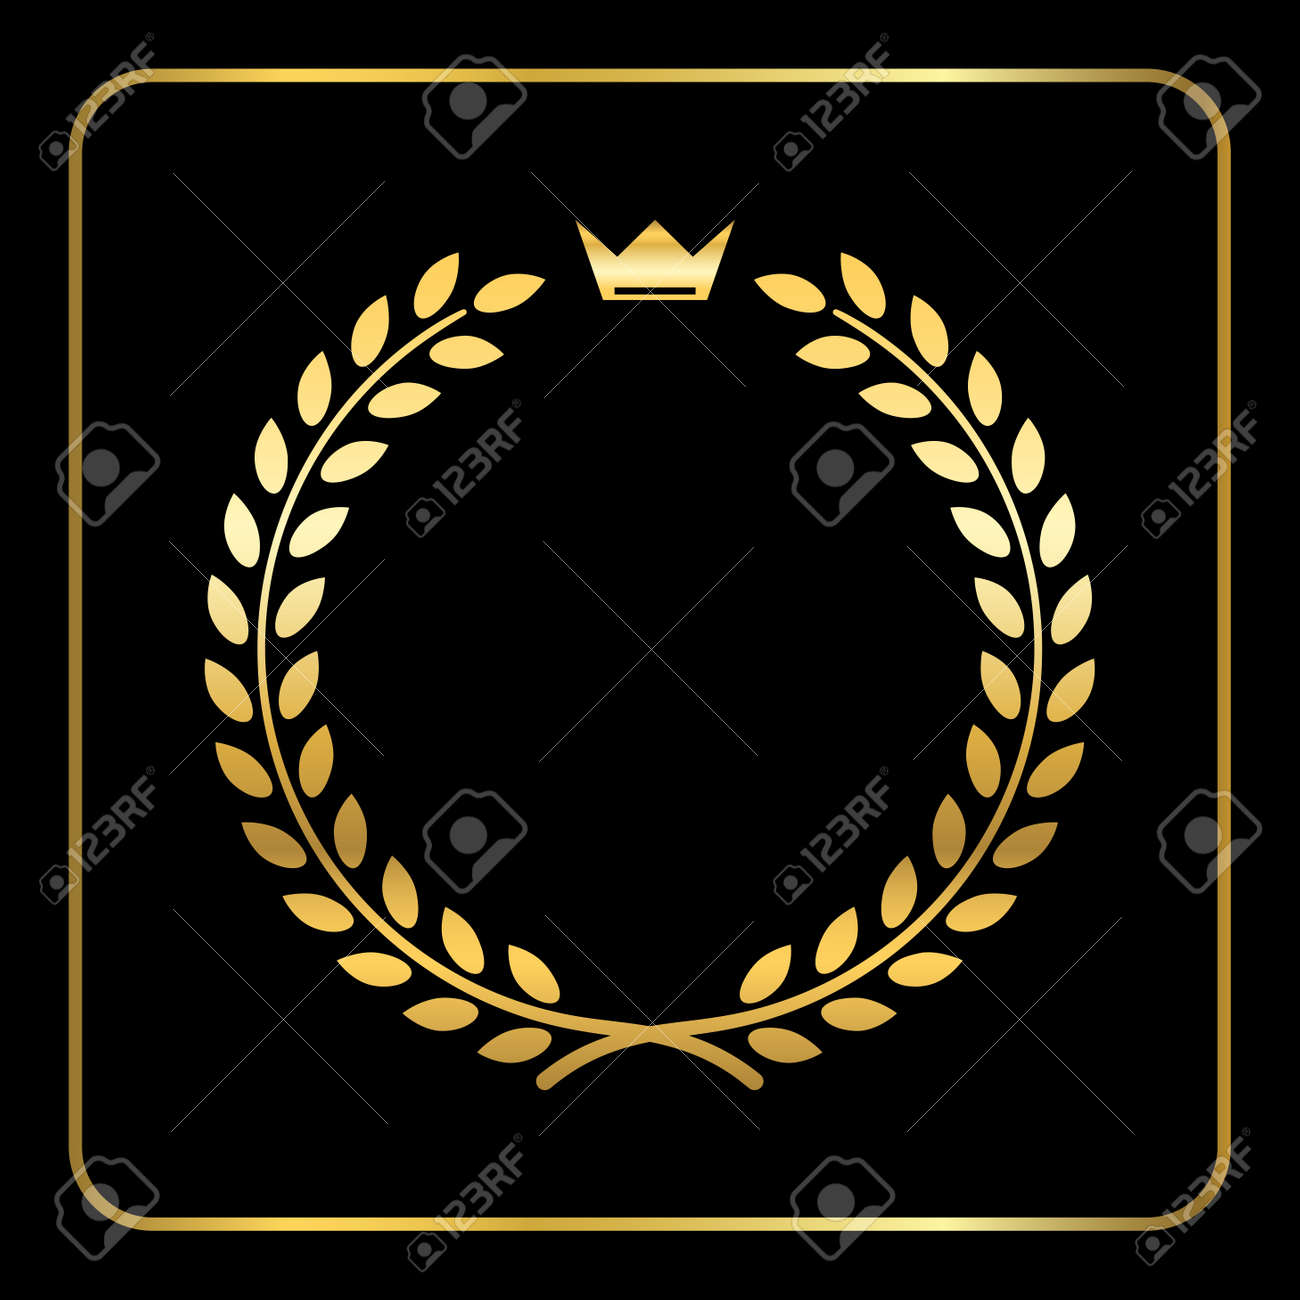 Gold Laurel Or Wheat Wreath Icon Symbol Of Victory Achievement And